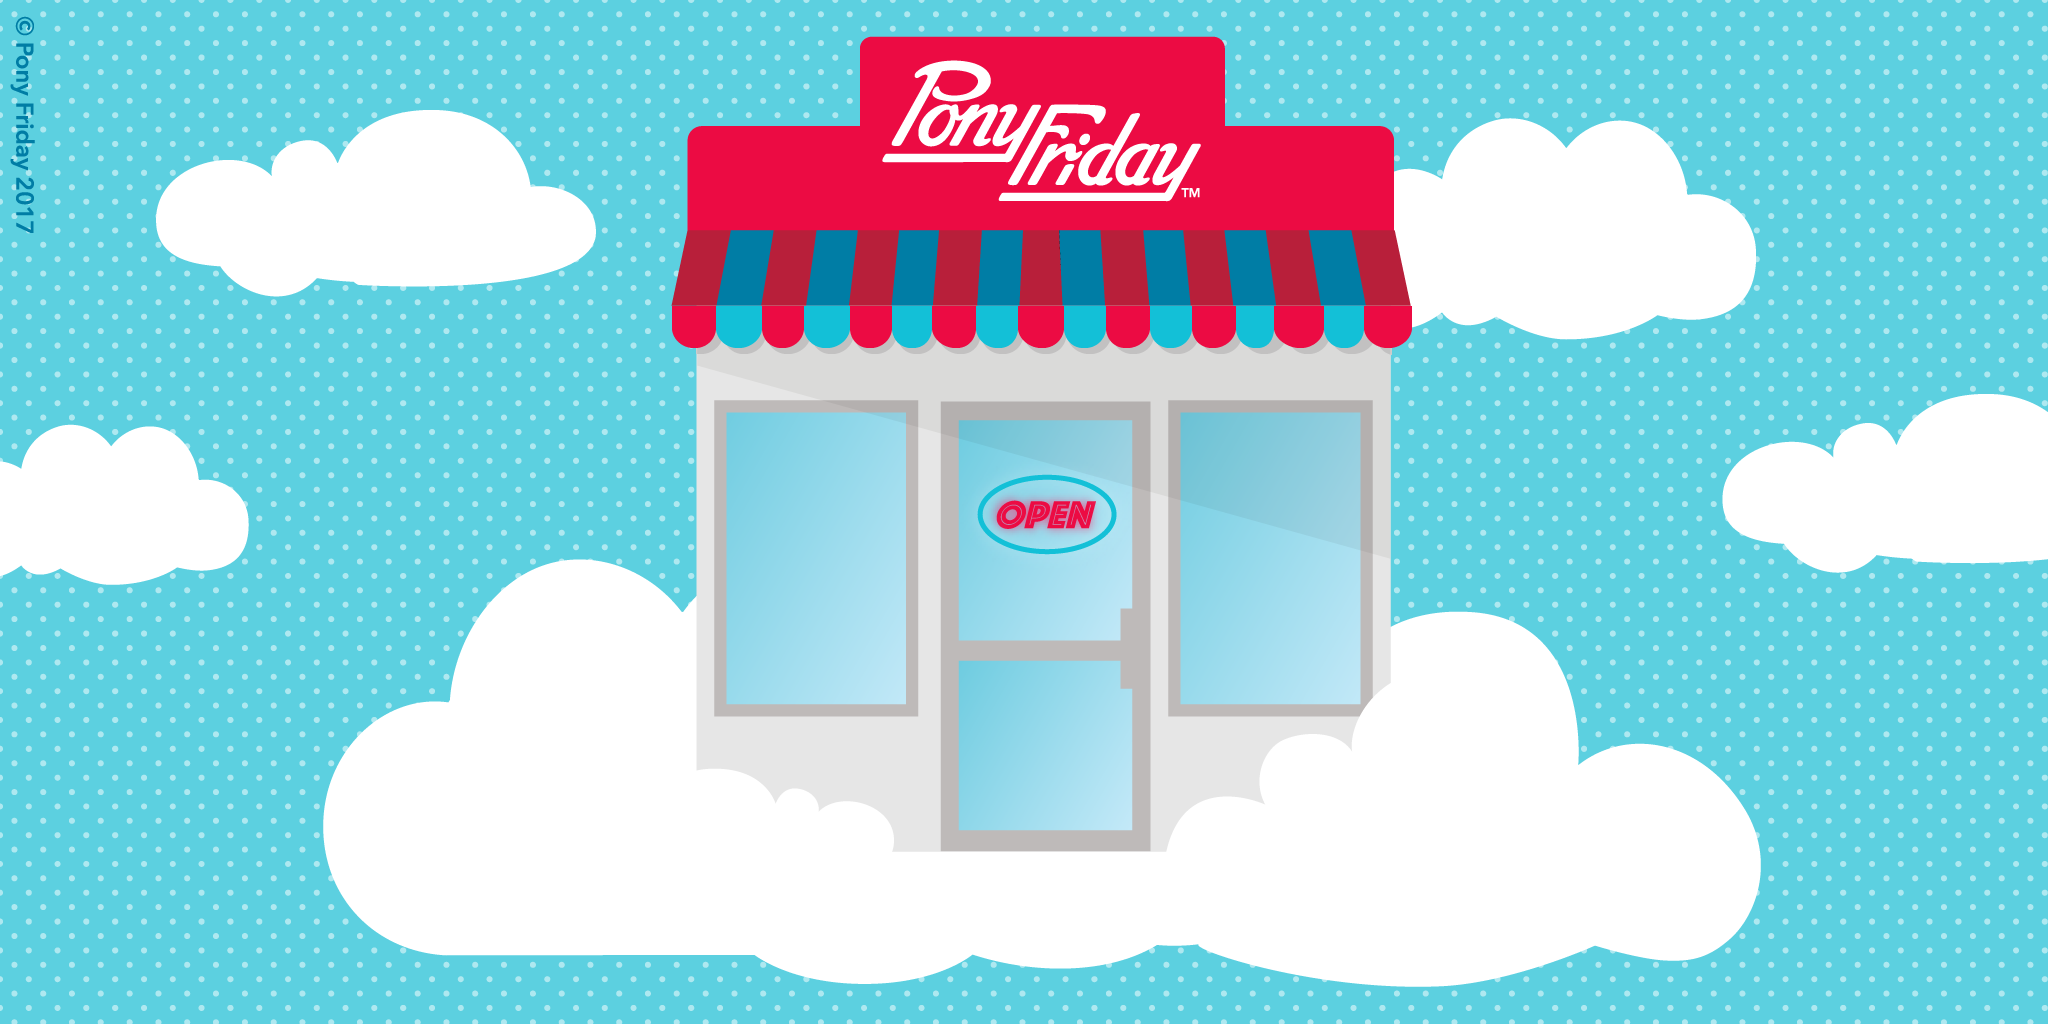 Pony-Friday-Online-Shopping-Virtual-Store-E-Commerce-Sky-Clouds-Studio-Blog-Header-Image.png